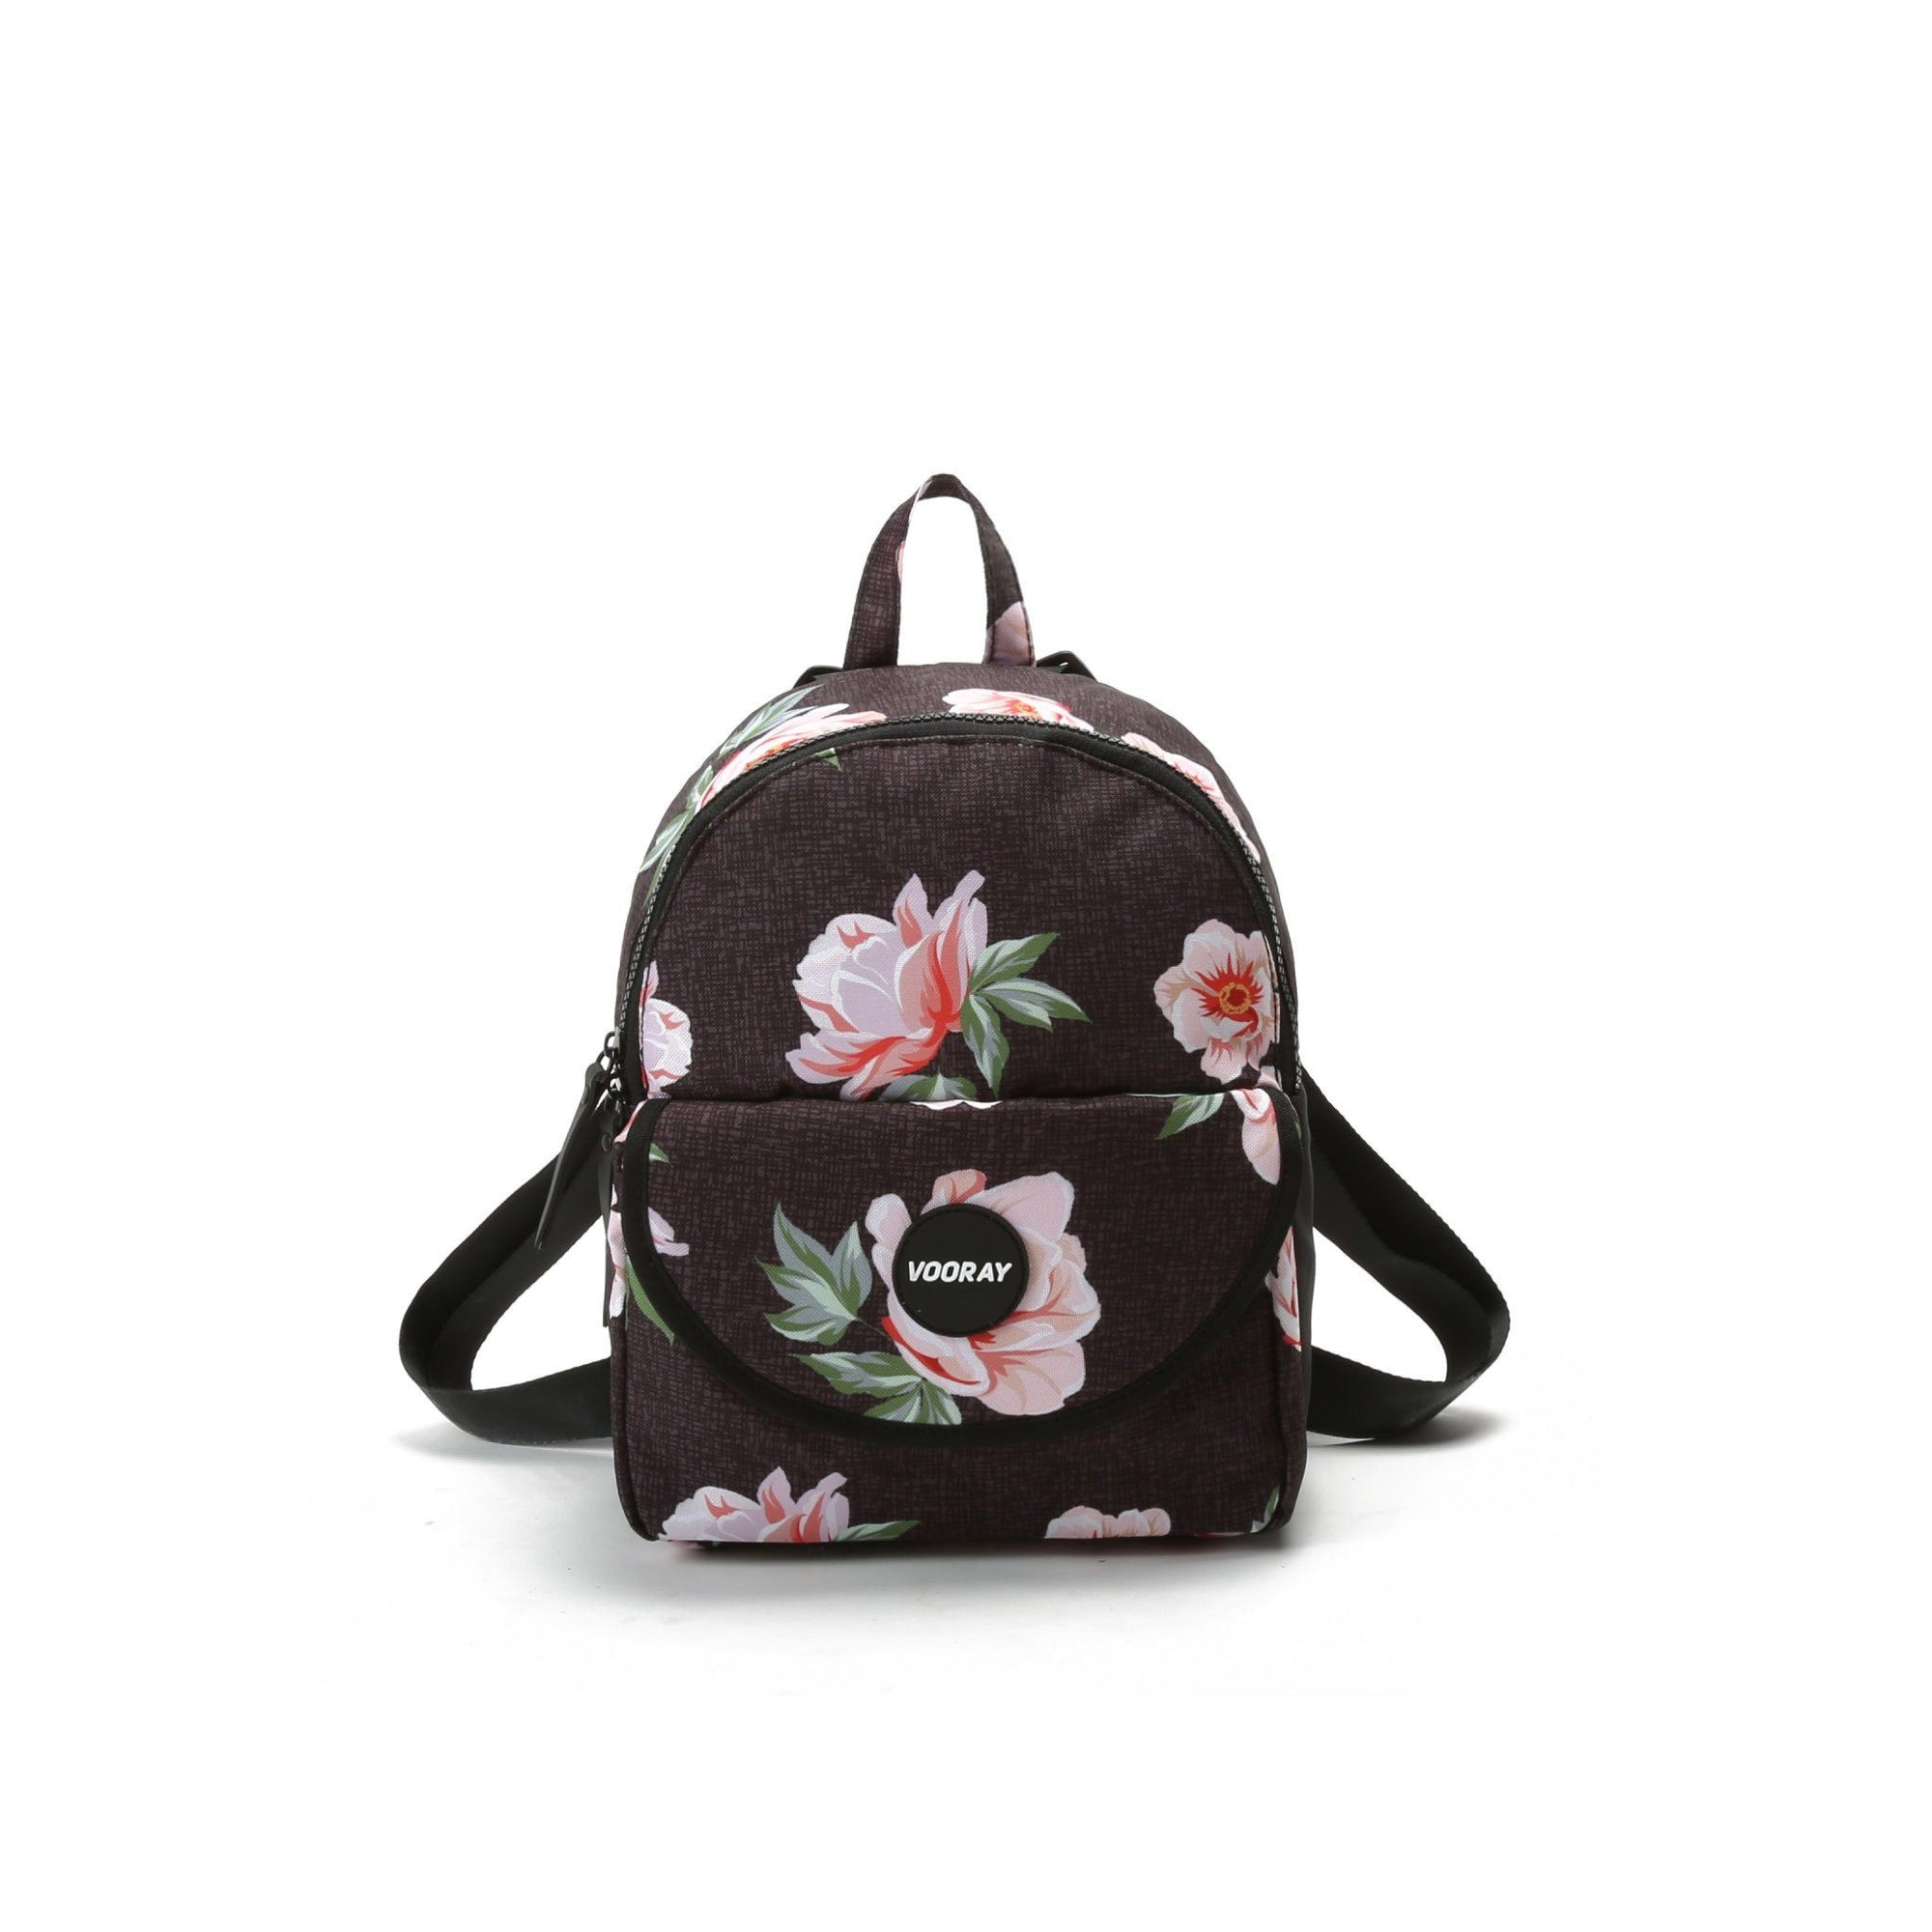 Vooray Lexi Backpack- Rose Black